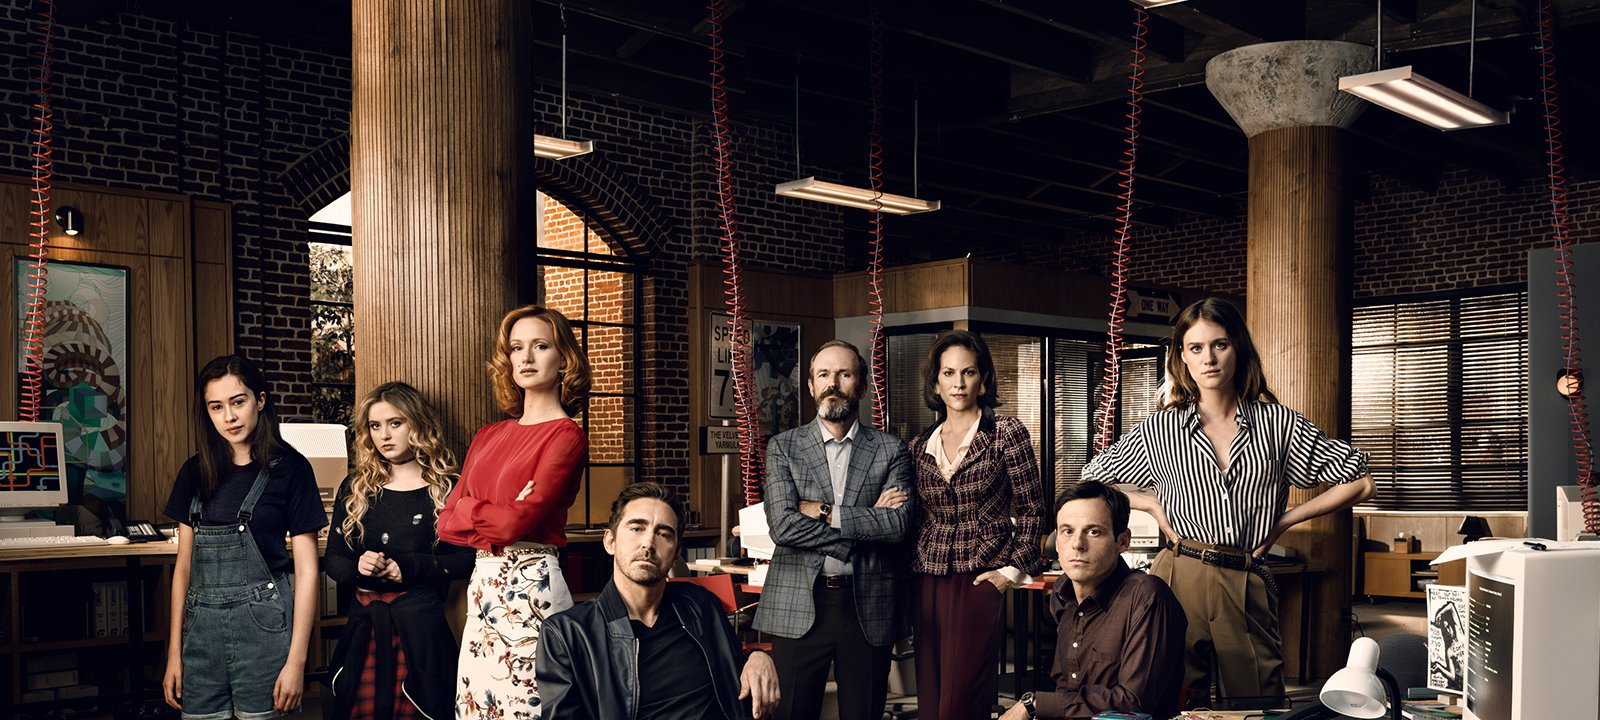 halt and catch fire download free